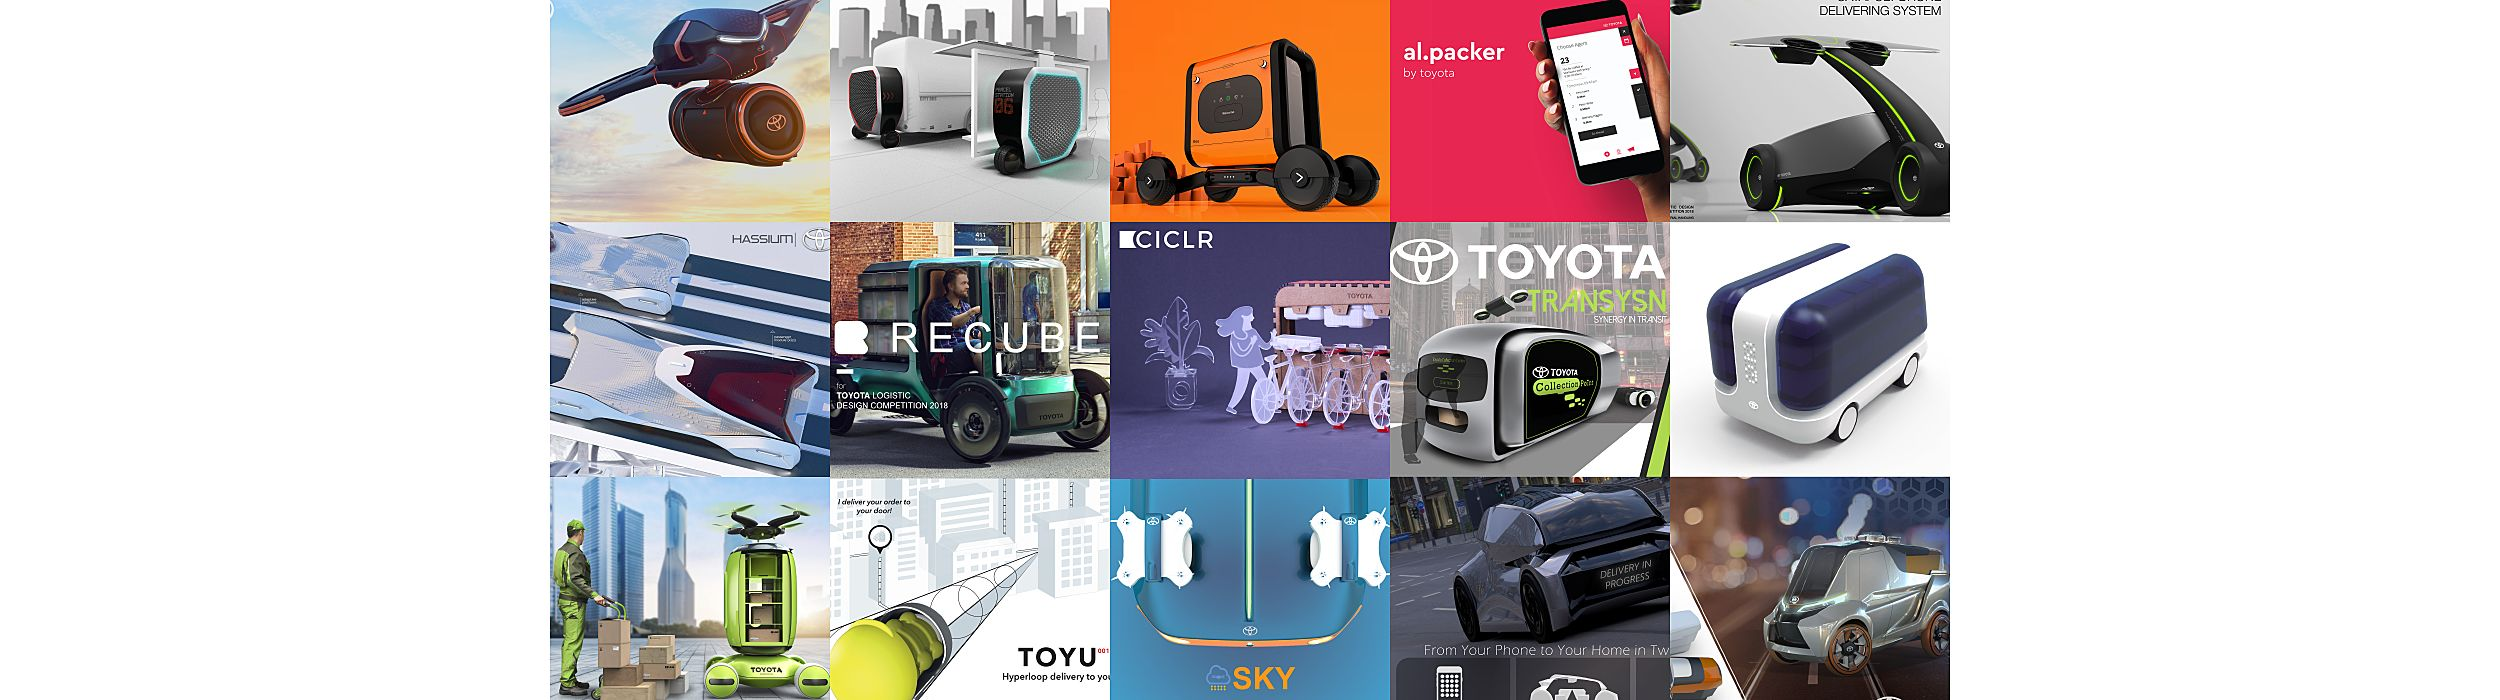 Toyota Logistic Design Competition finalists